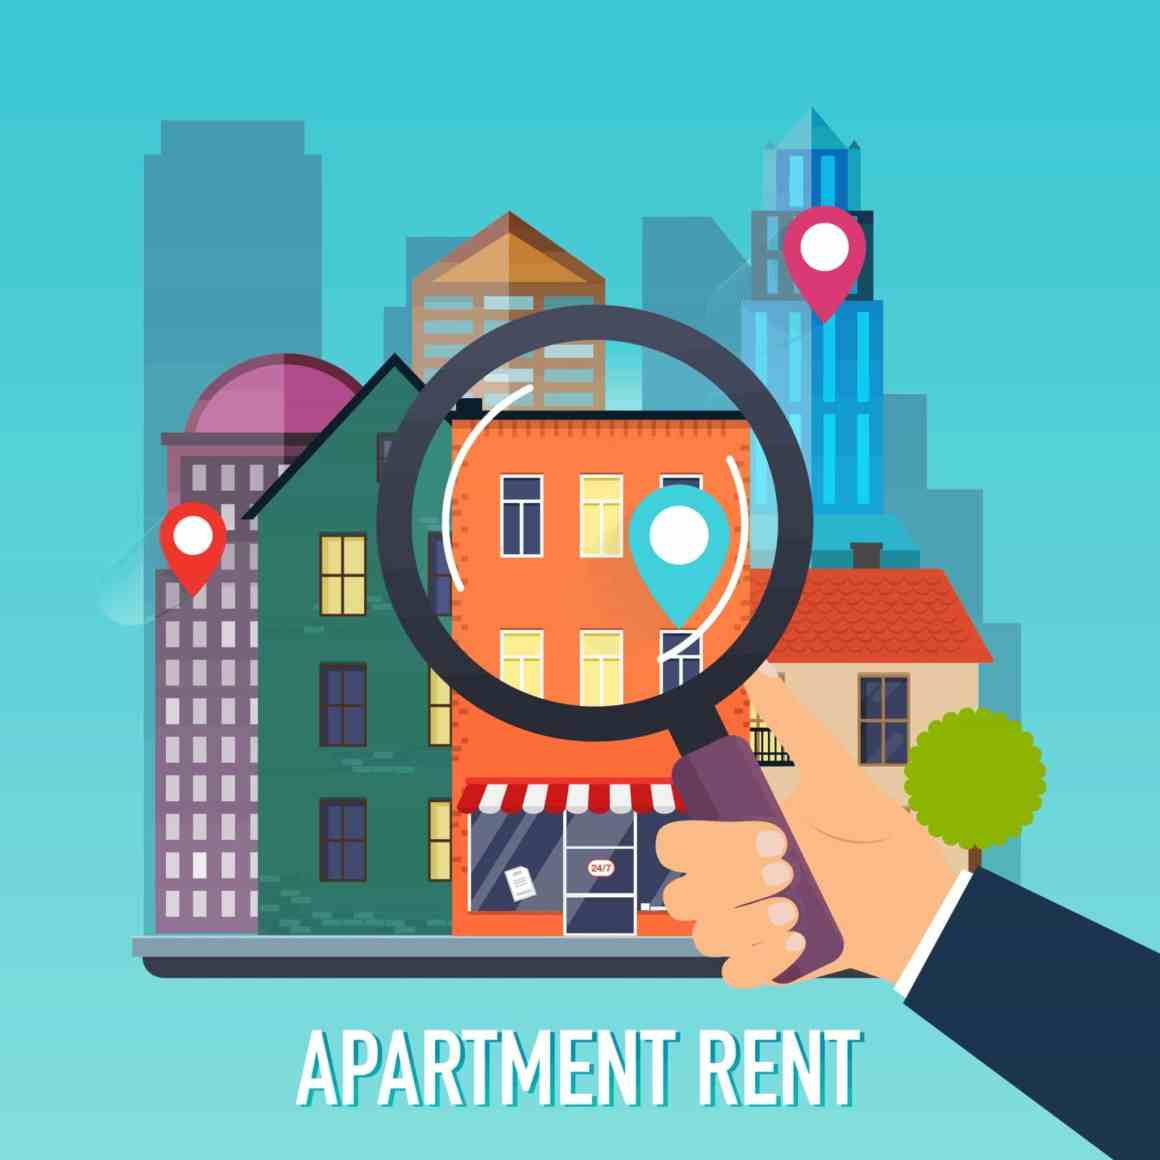 Rent Hikes in for NYC Apartments Slowing